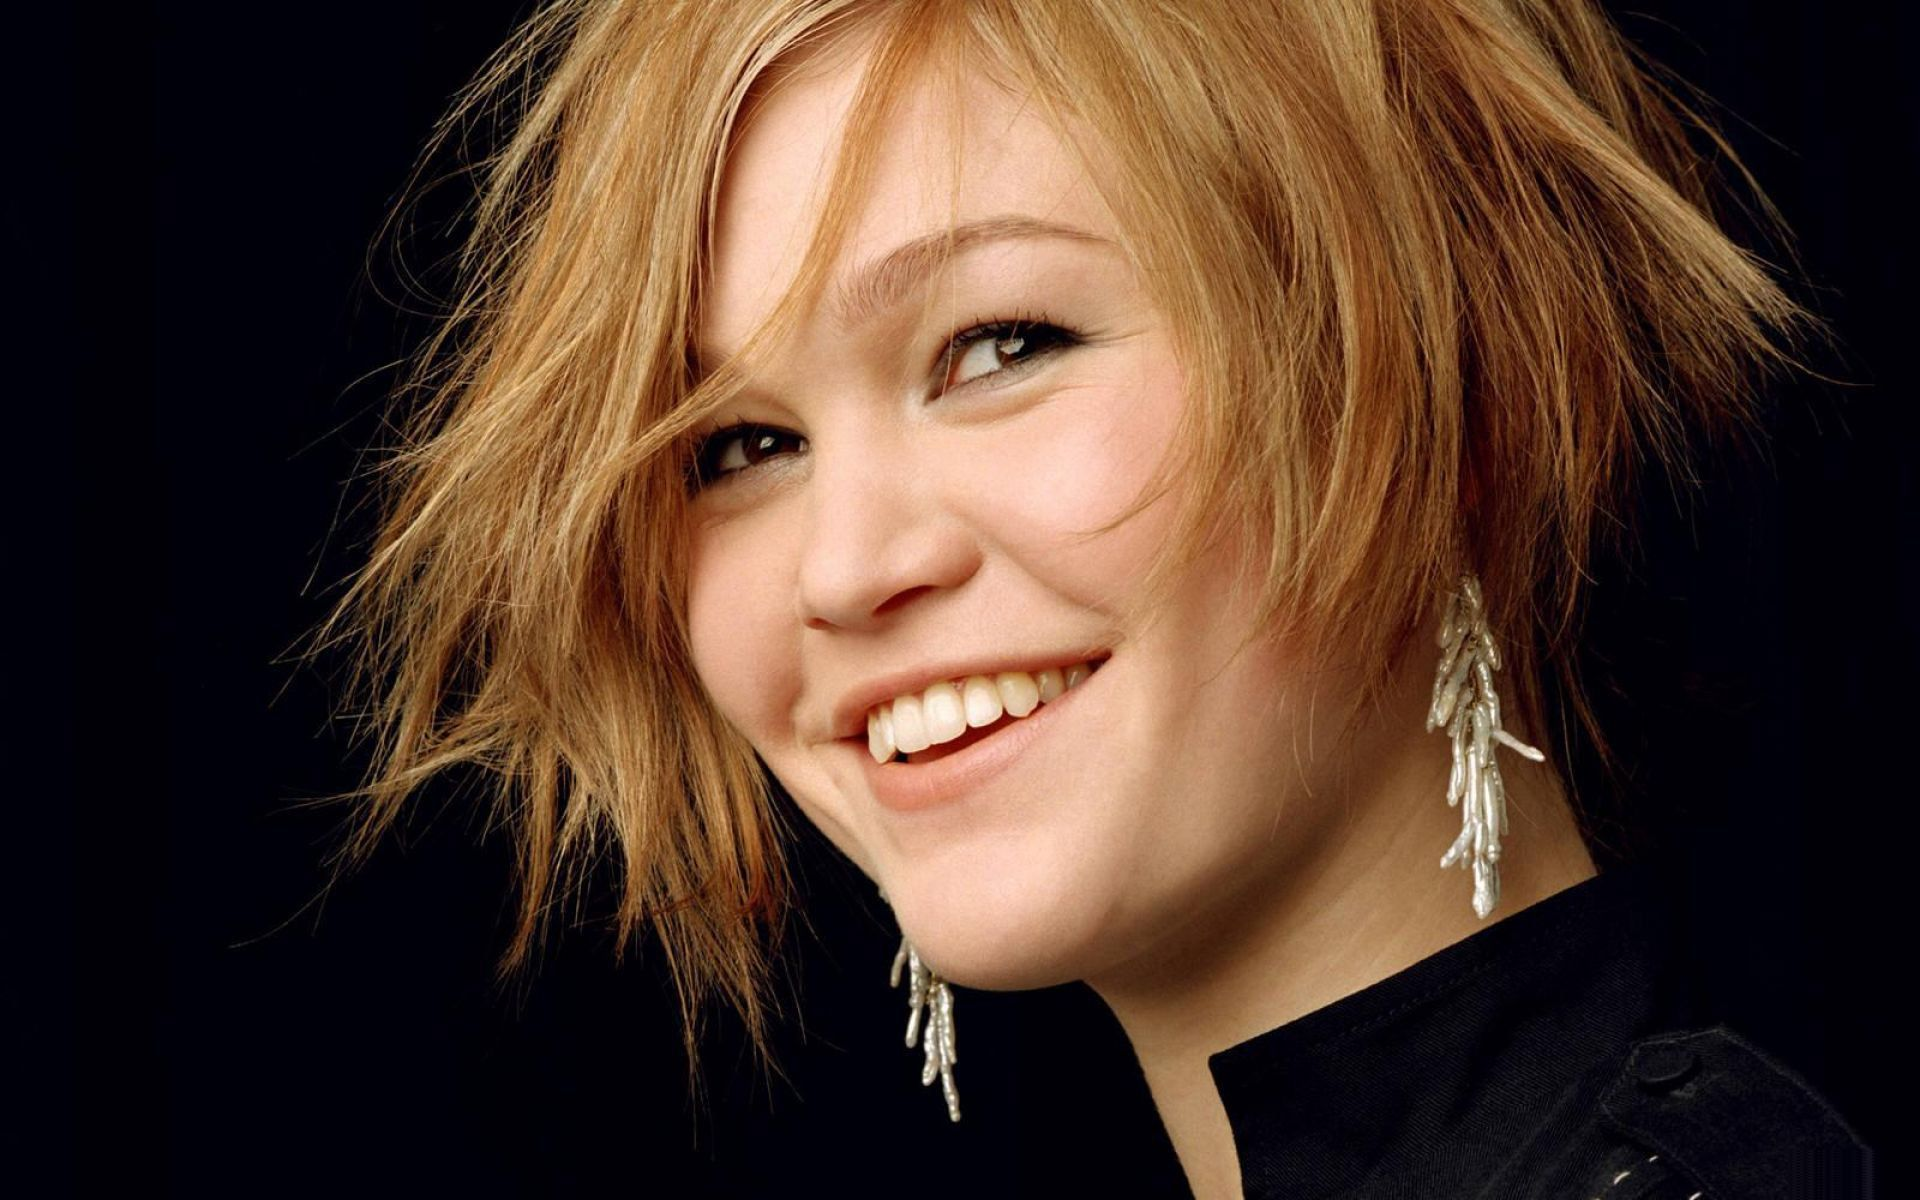 Xai'nyy Julia Stiles, Actress (10 Things I Hate About You).